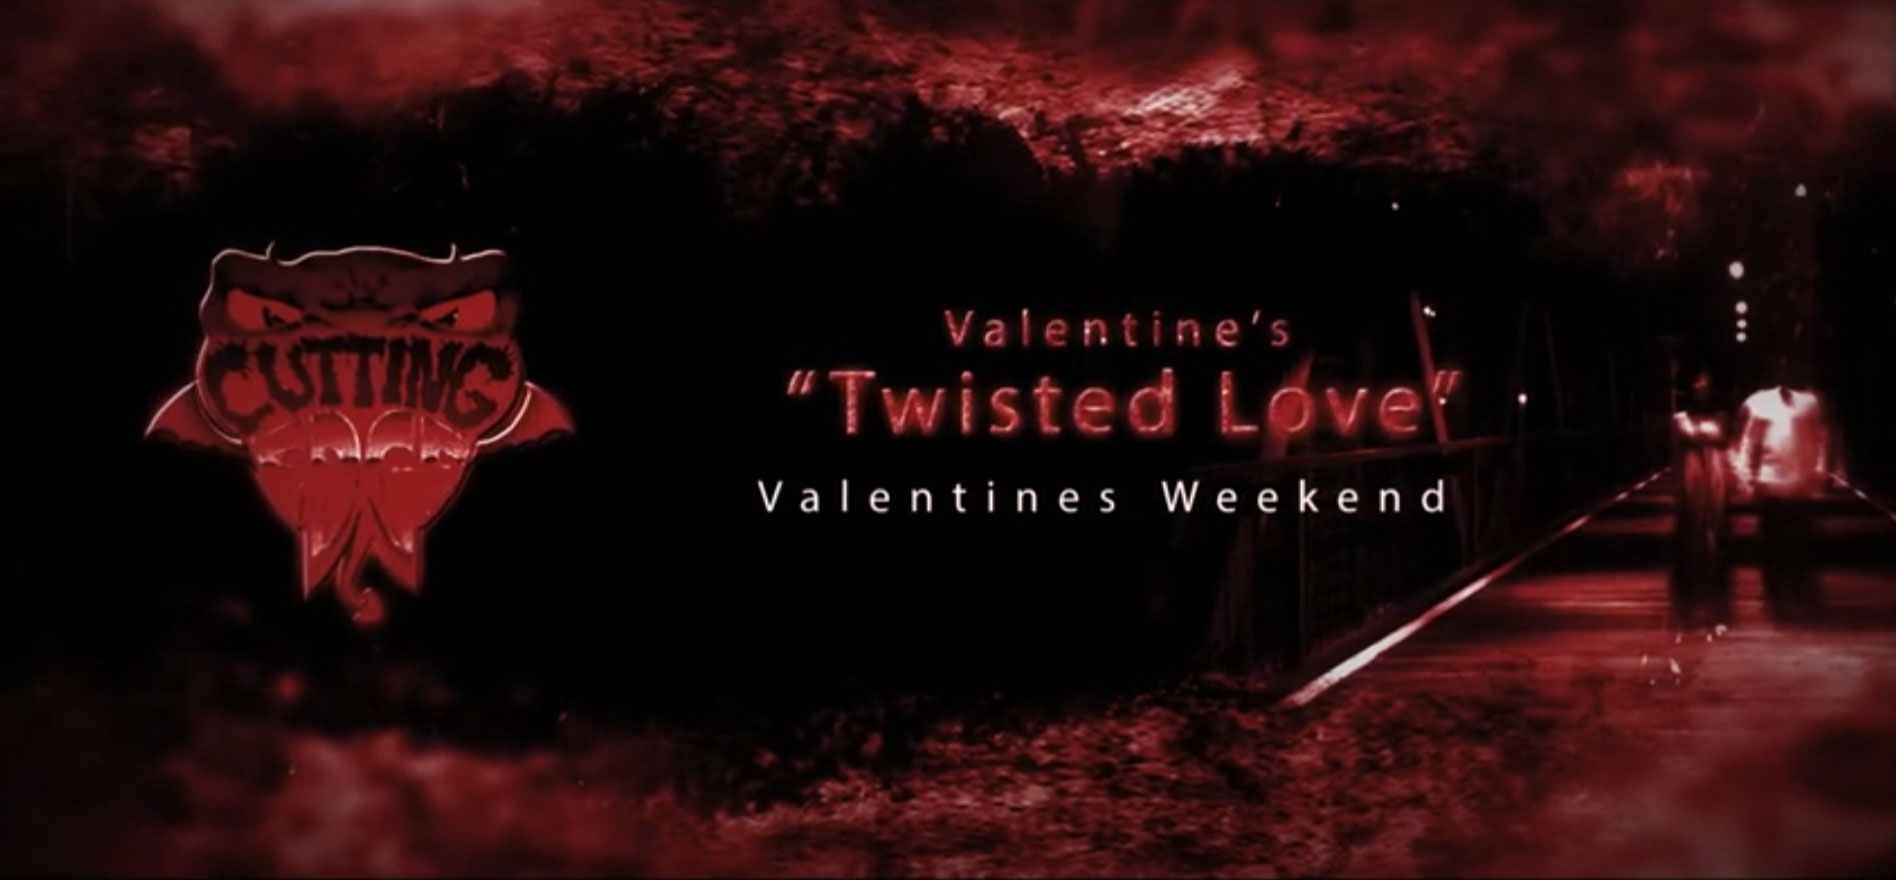 "CUTTING EDGE HAUNTED HOUSE IN FORT WORTH, TEXAS OPEN SATURDAY, FEBRUARY 13TH for ""TWISTED LOVE"" VALENTINE'S EVENT"